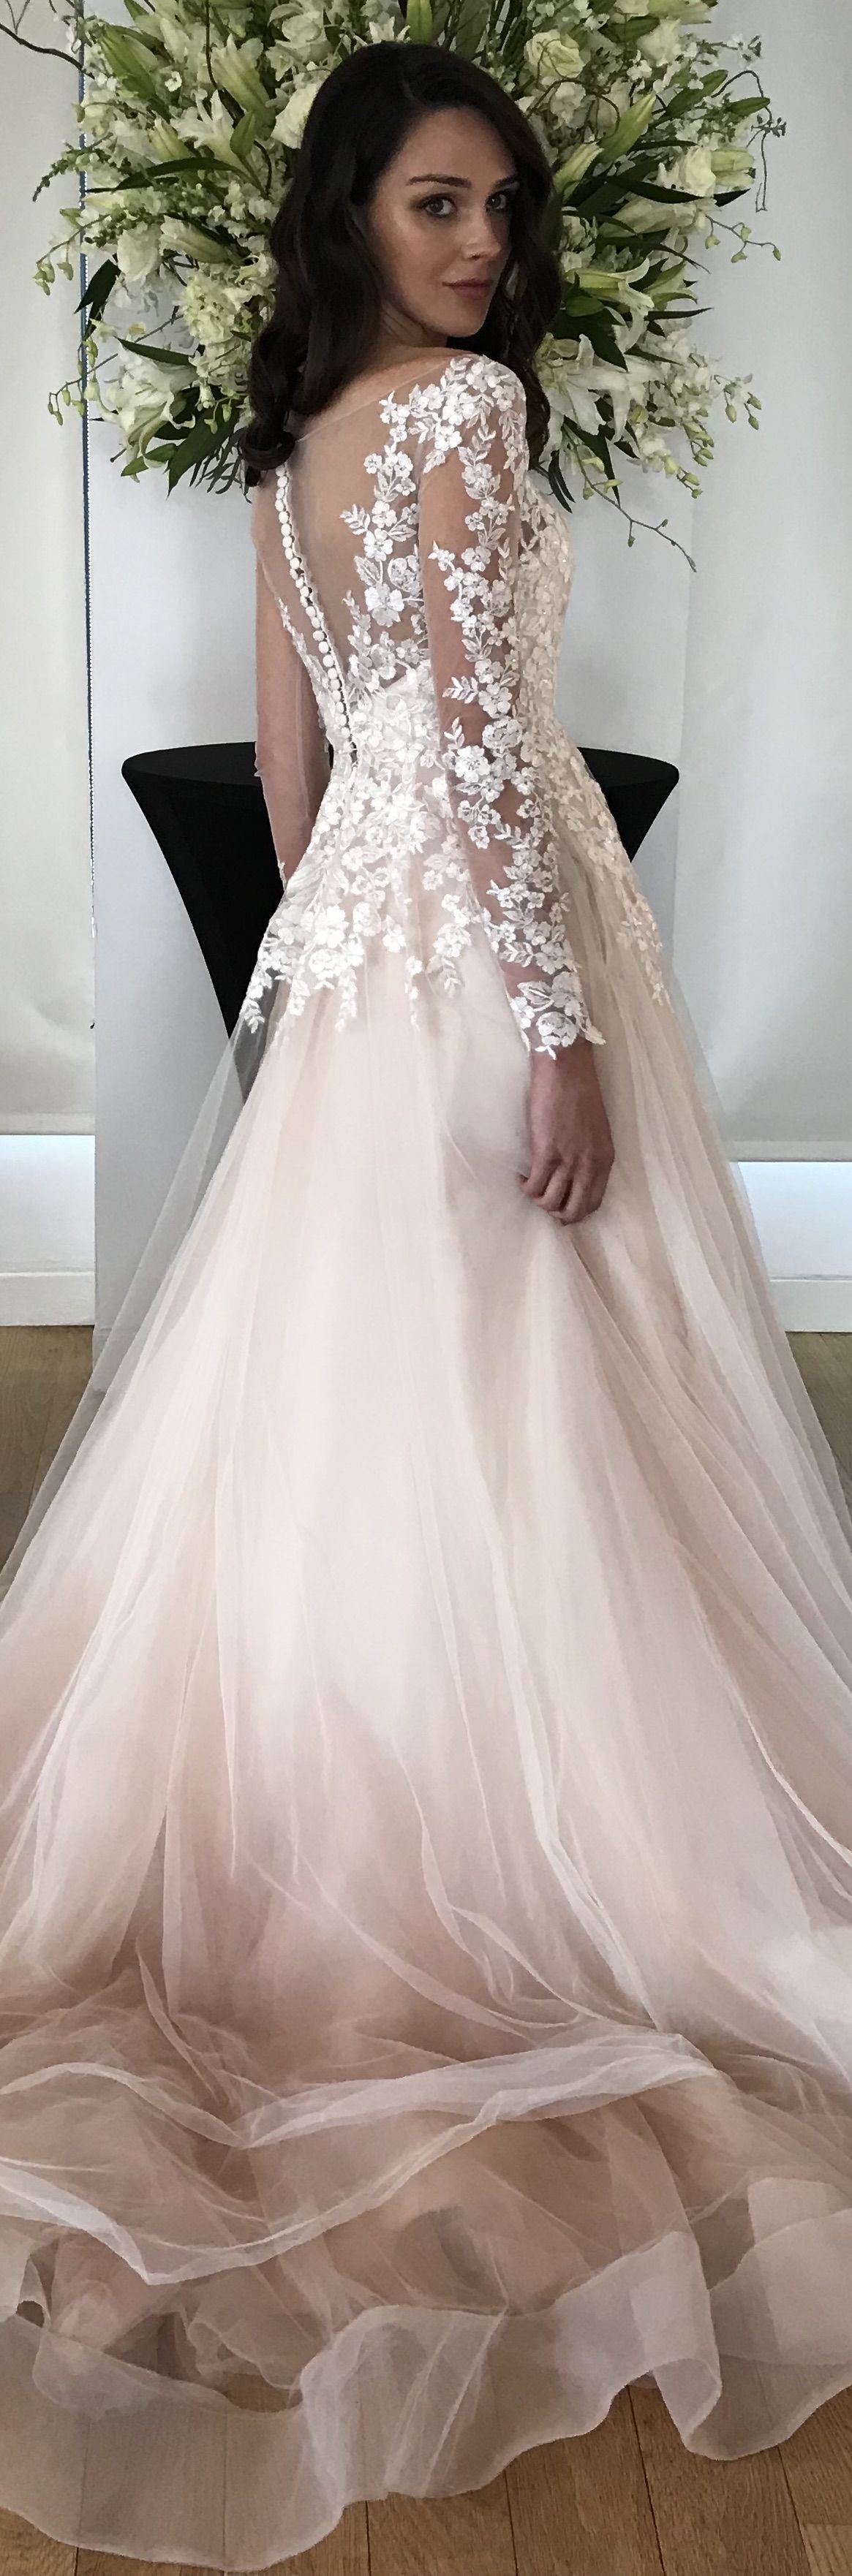 Alba wedding dress by kelly faetanini in blush beaded